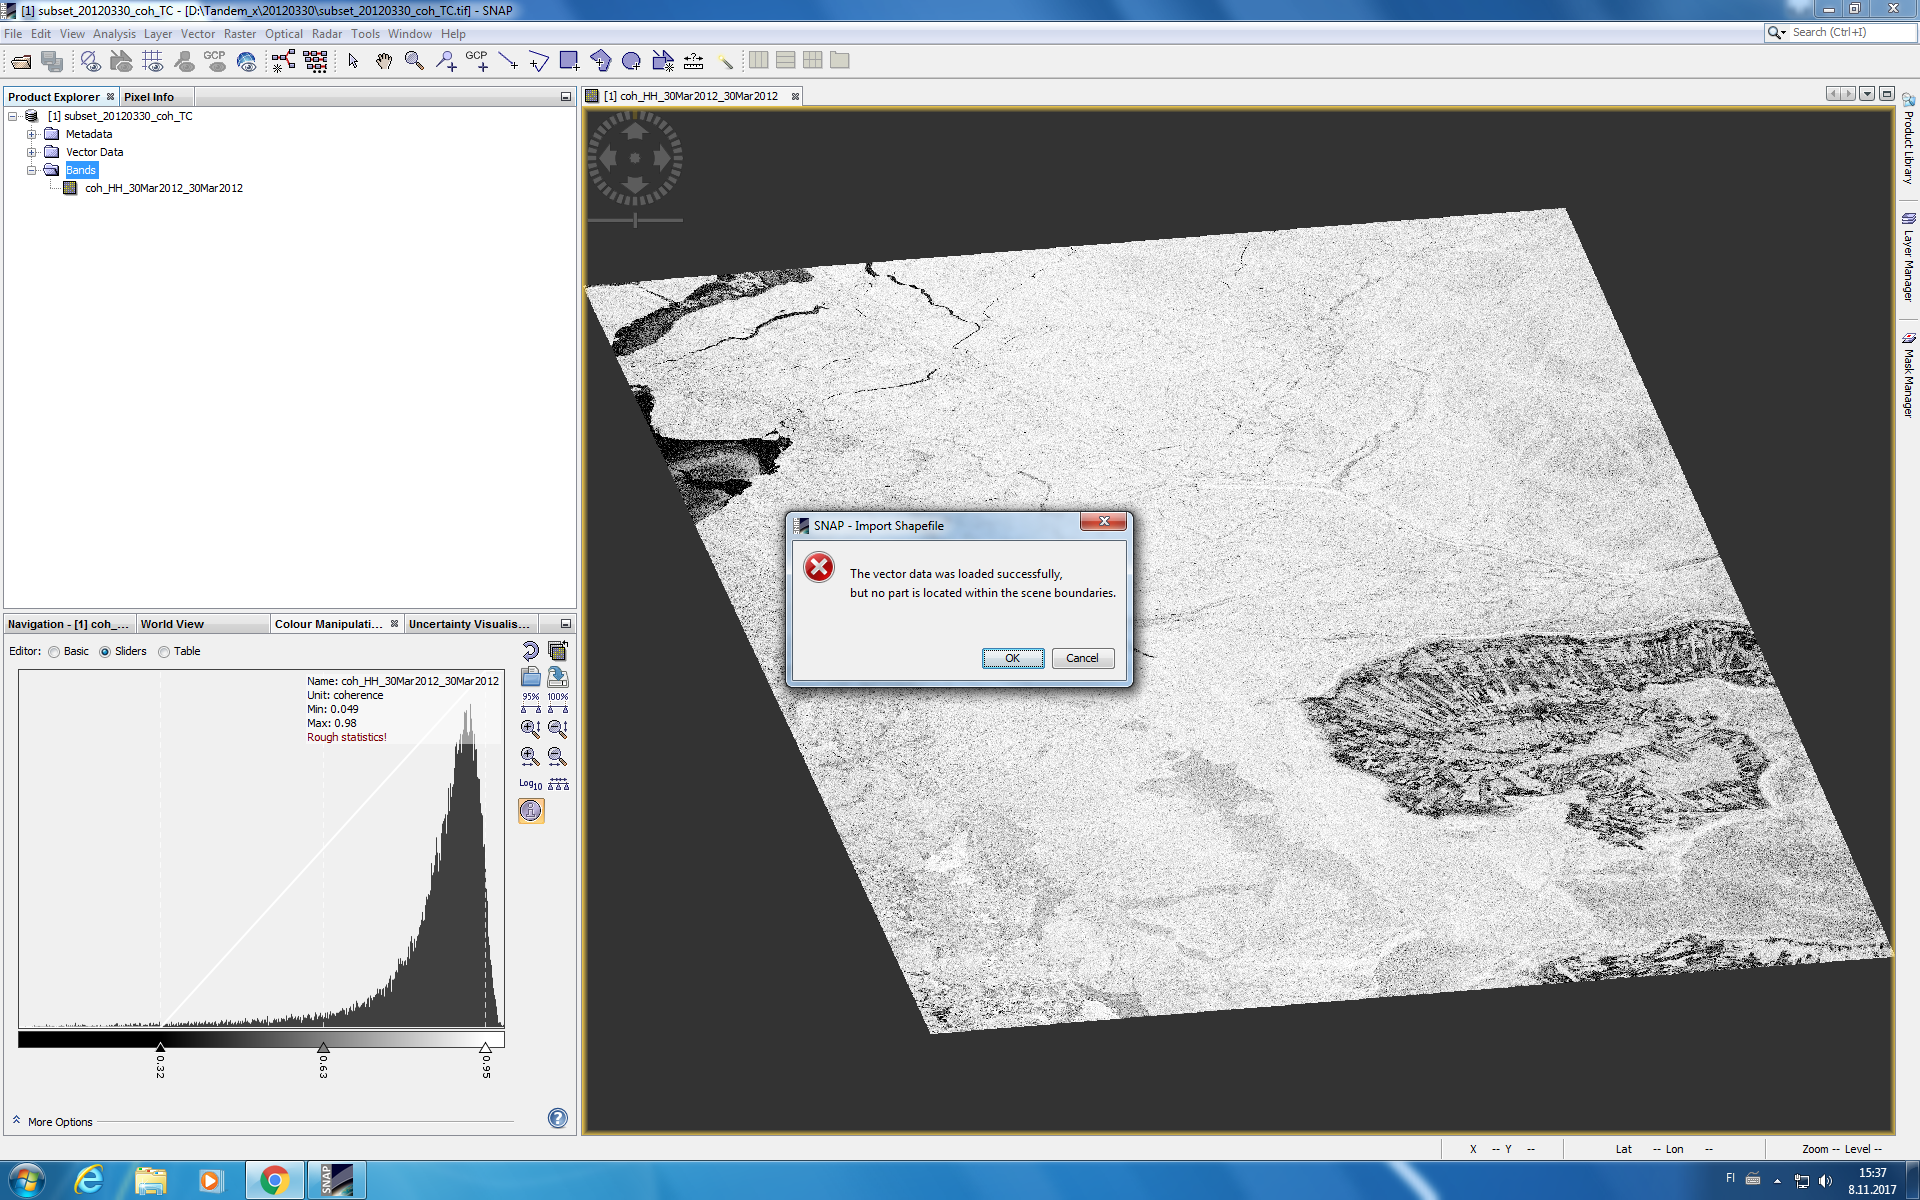 Masking land area by using OSM (Open Street Map) shapefile data